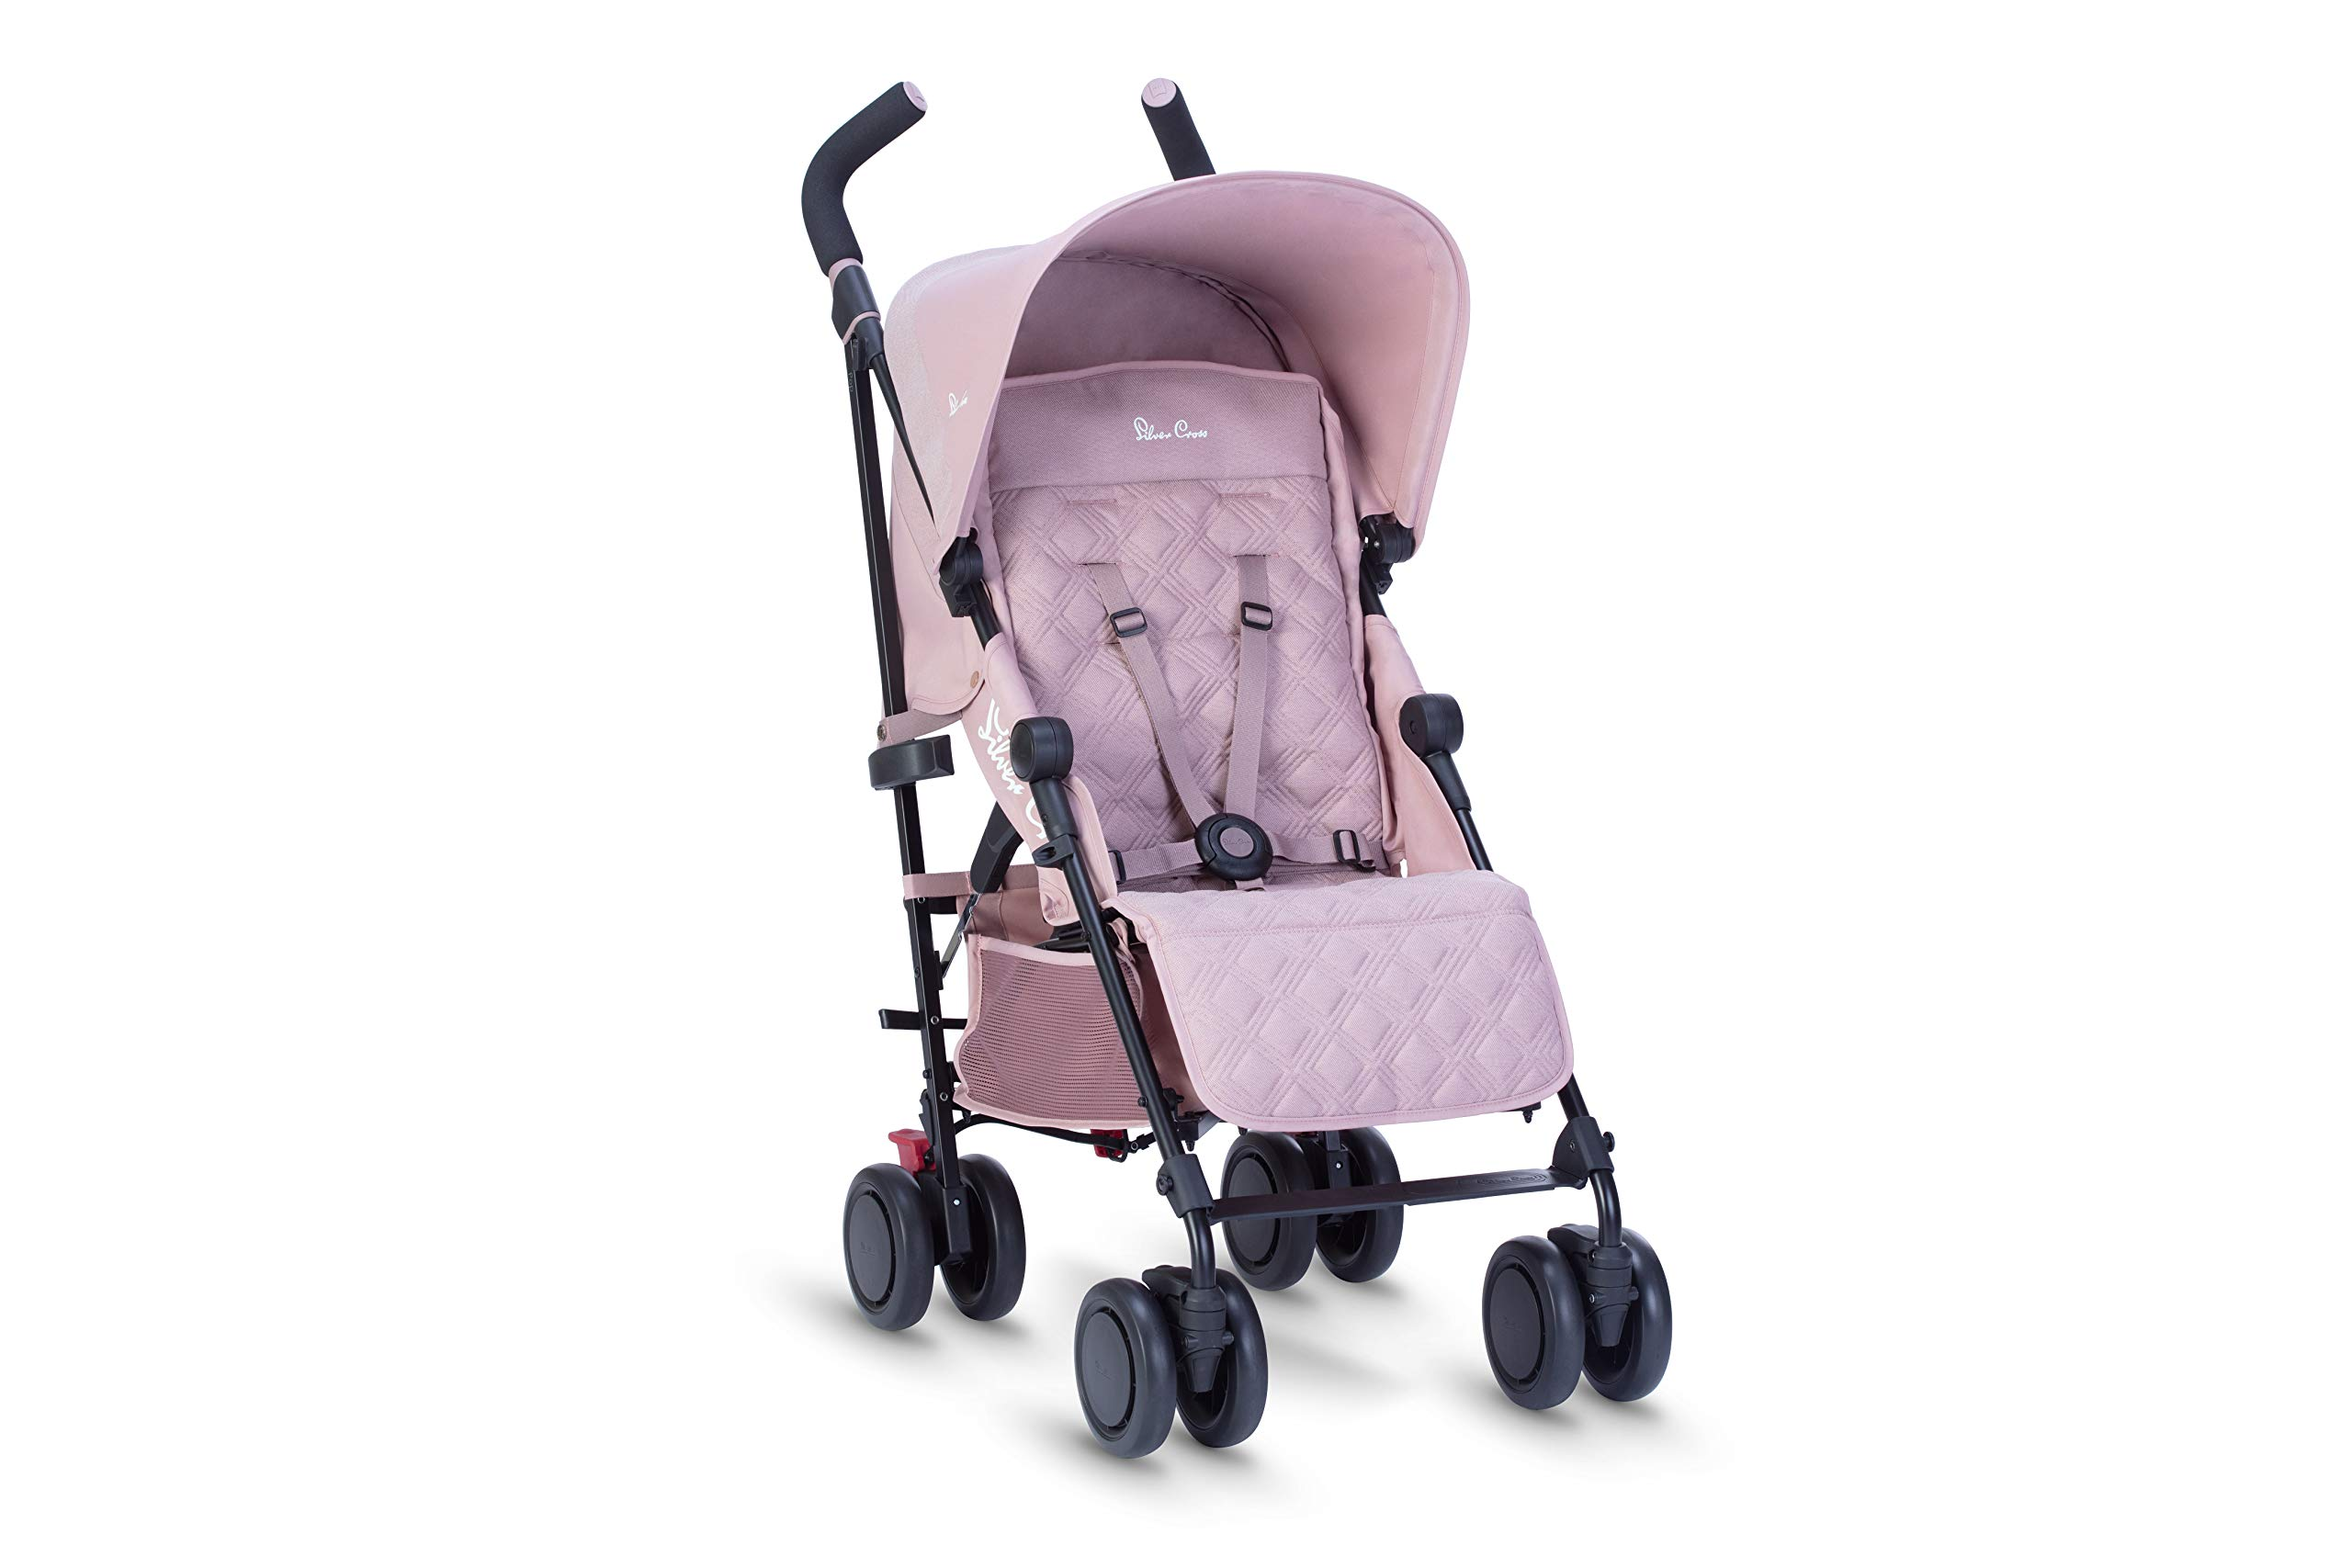 Silver Cross Pop Stroller, Compact and Lightweight Pushchair - Blush Silver Cross NEWBORN TO TODDLER: Suitable from birth up to toddlers (25kg), sitting upright to watch the world, or reclining to a lie-flat position WATER AND WIND RESISTANT: Ideal for all weather conditions to keep your baby warm and protected from wind and rain LIGHTWEIGHT AND COMPACT: Quick and easy one-handed fold feature with a carry handle for ease positioned on the side of the matte black chassis 3